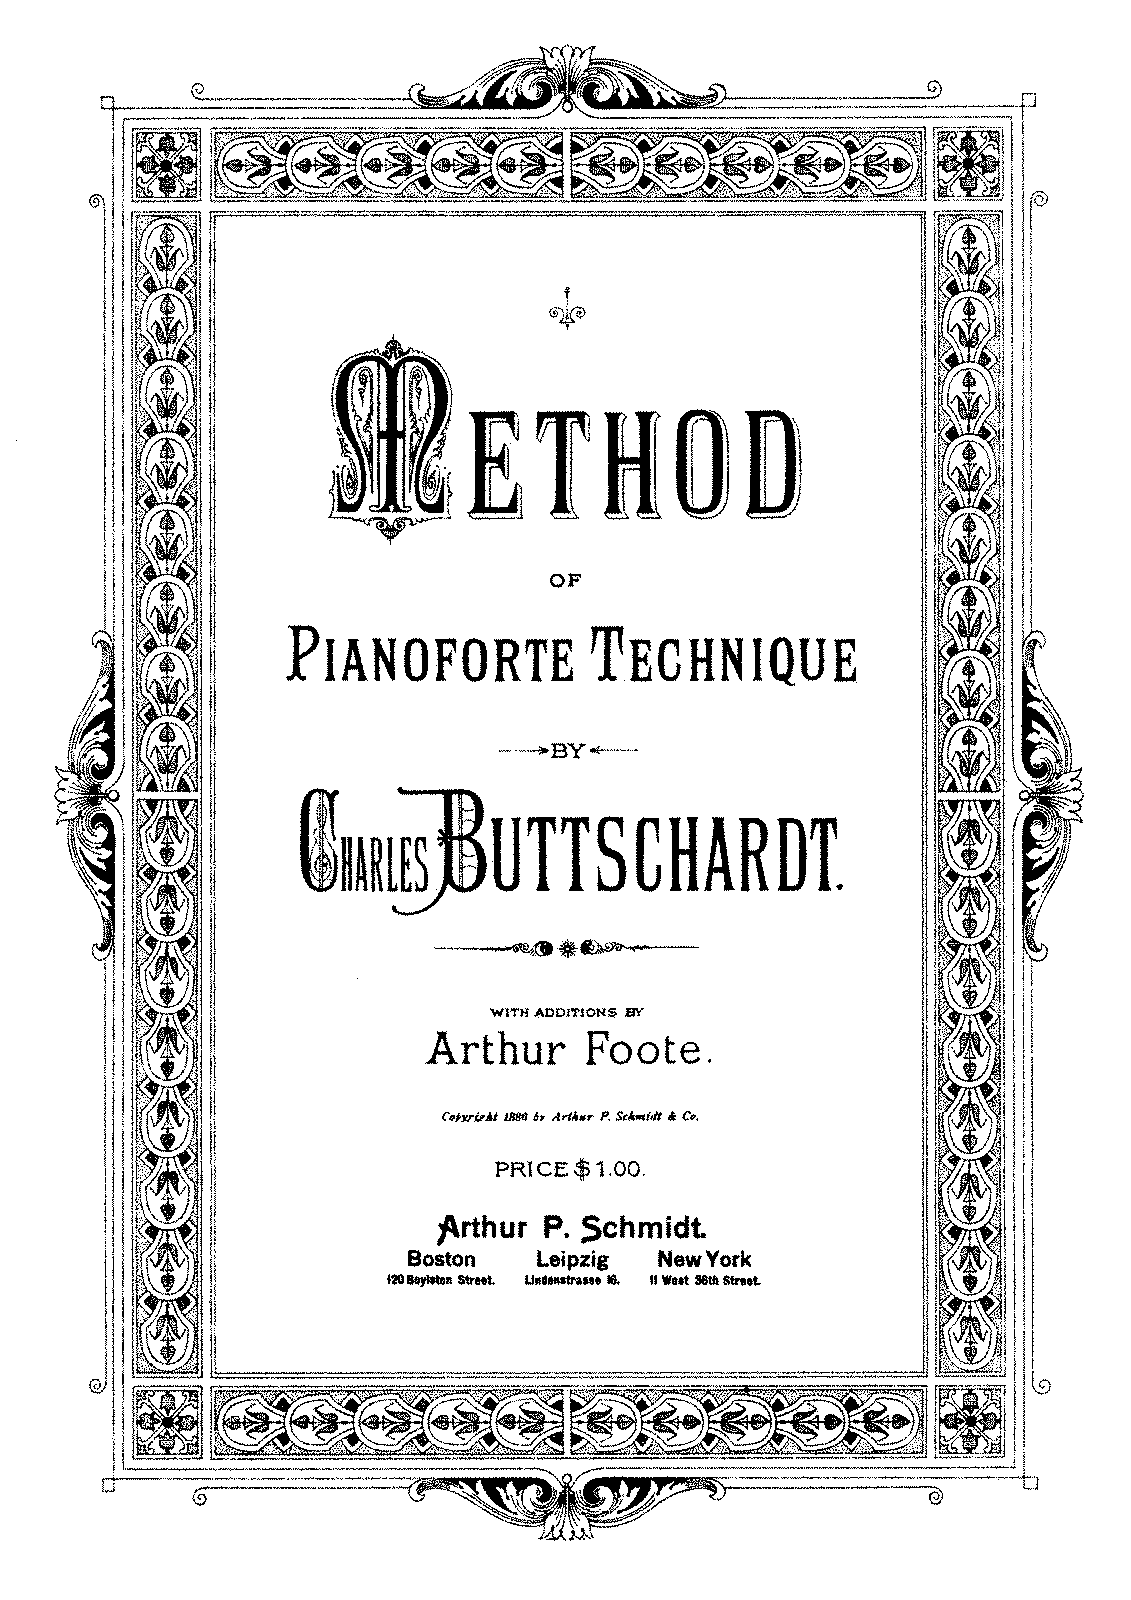 PMLP588815-Buttschardt, Charles - Method of Pianoforte Technique - Editor Arthur Foot.pdf